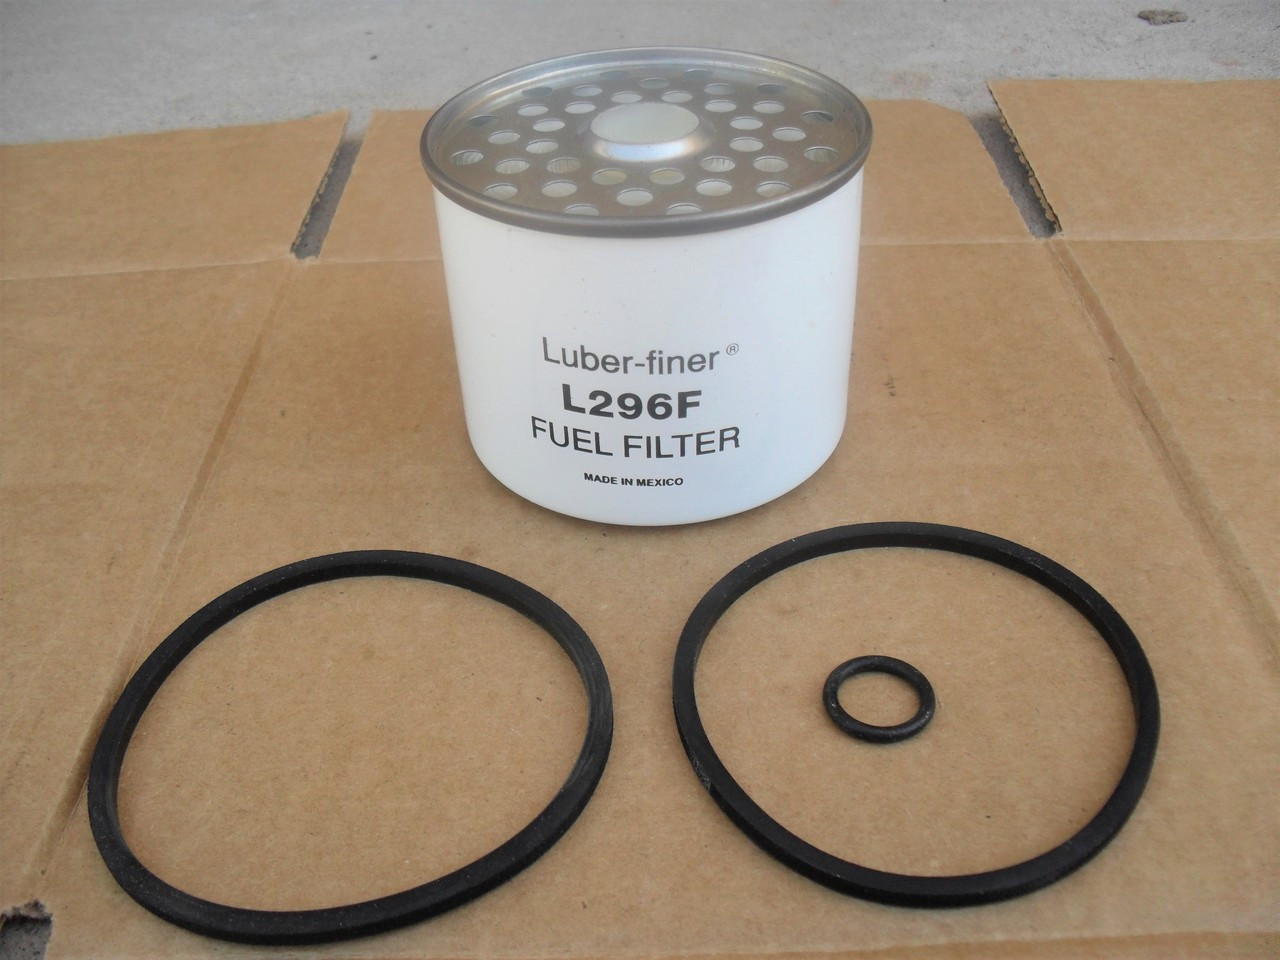 Fuel Filter for Ditchwitch R100, R65 Trencher, 500625, 83937061, V34827, Ford